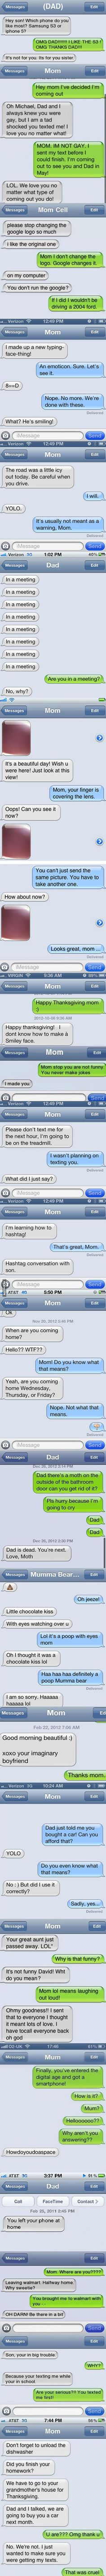 22 Reasons Why Parents Shouldn't Text